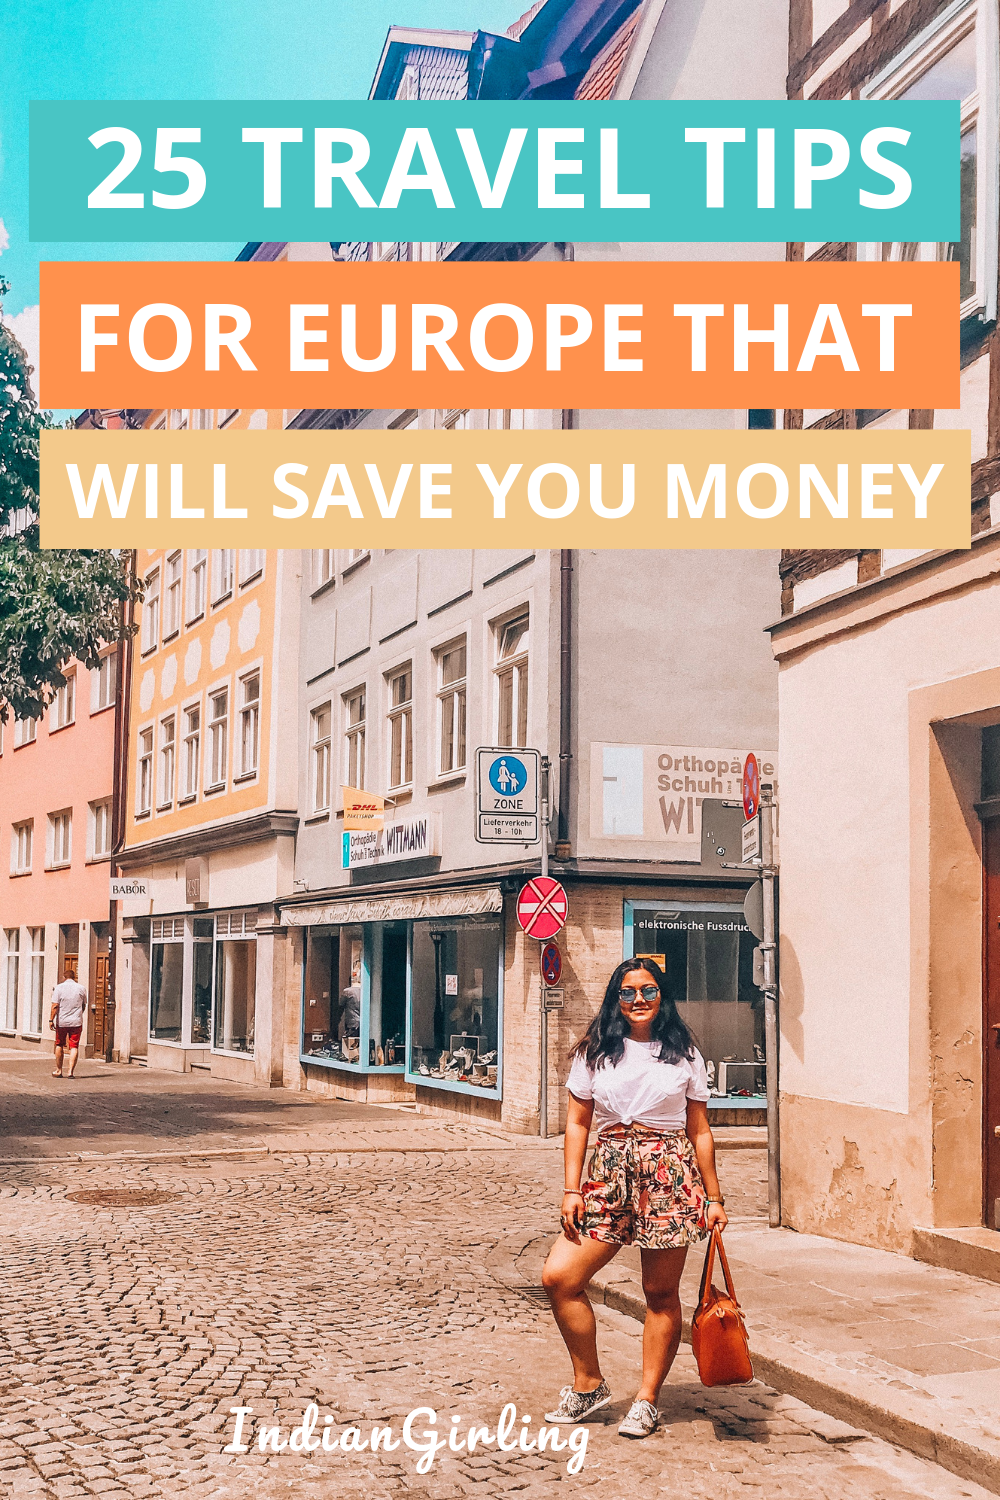 , Traveling to Europe and wondering how to travel Europe cheap? Youre in the righ, My Travels Blog 2020, My Travels Blog 2020